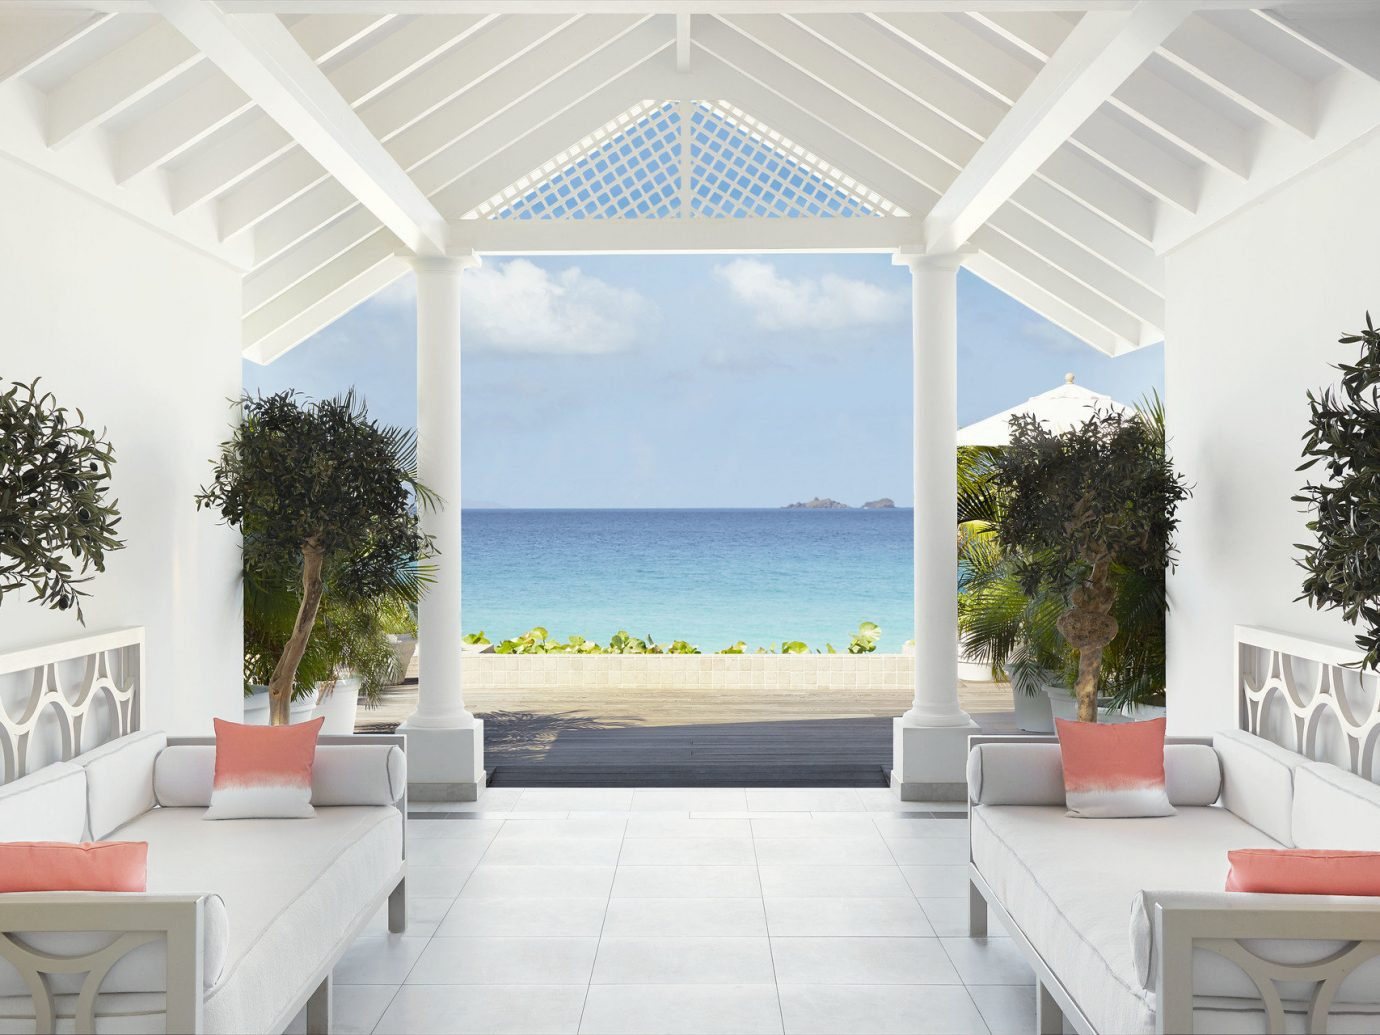 View From Veval Blanc St-Barth Ilse De France At St. Bart'S